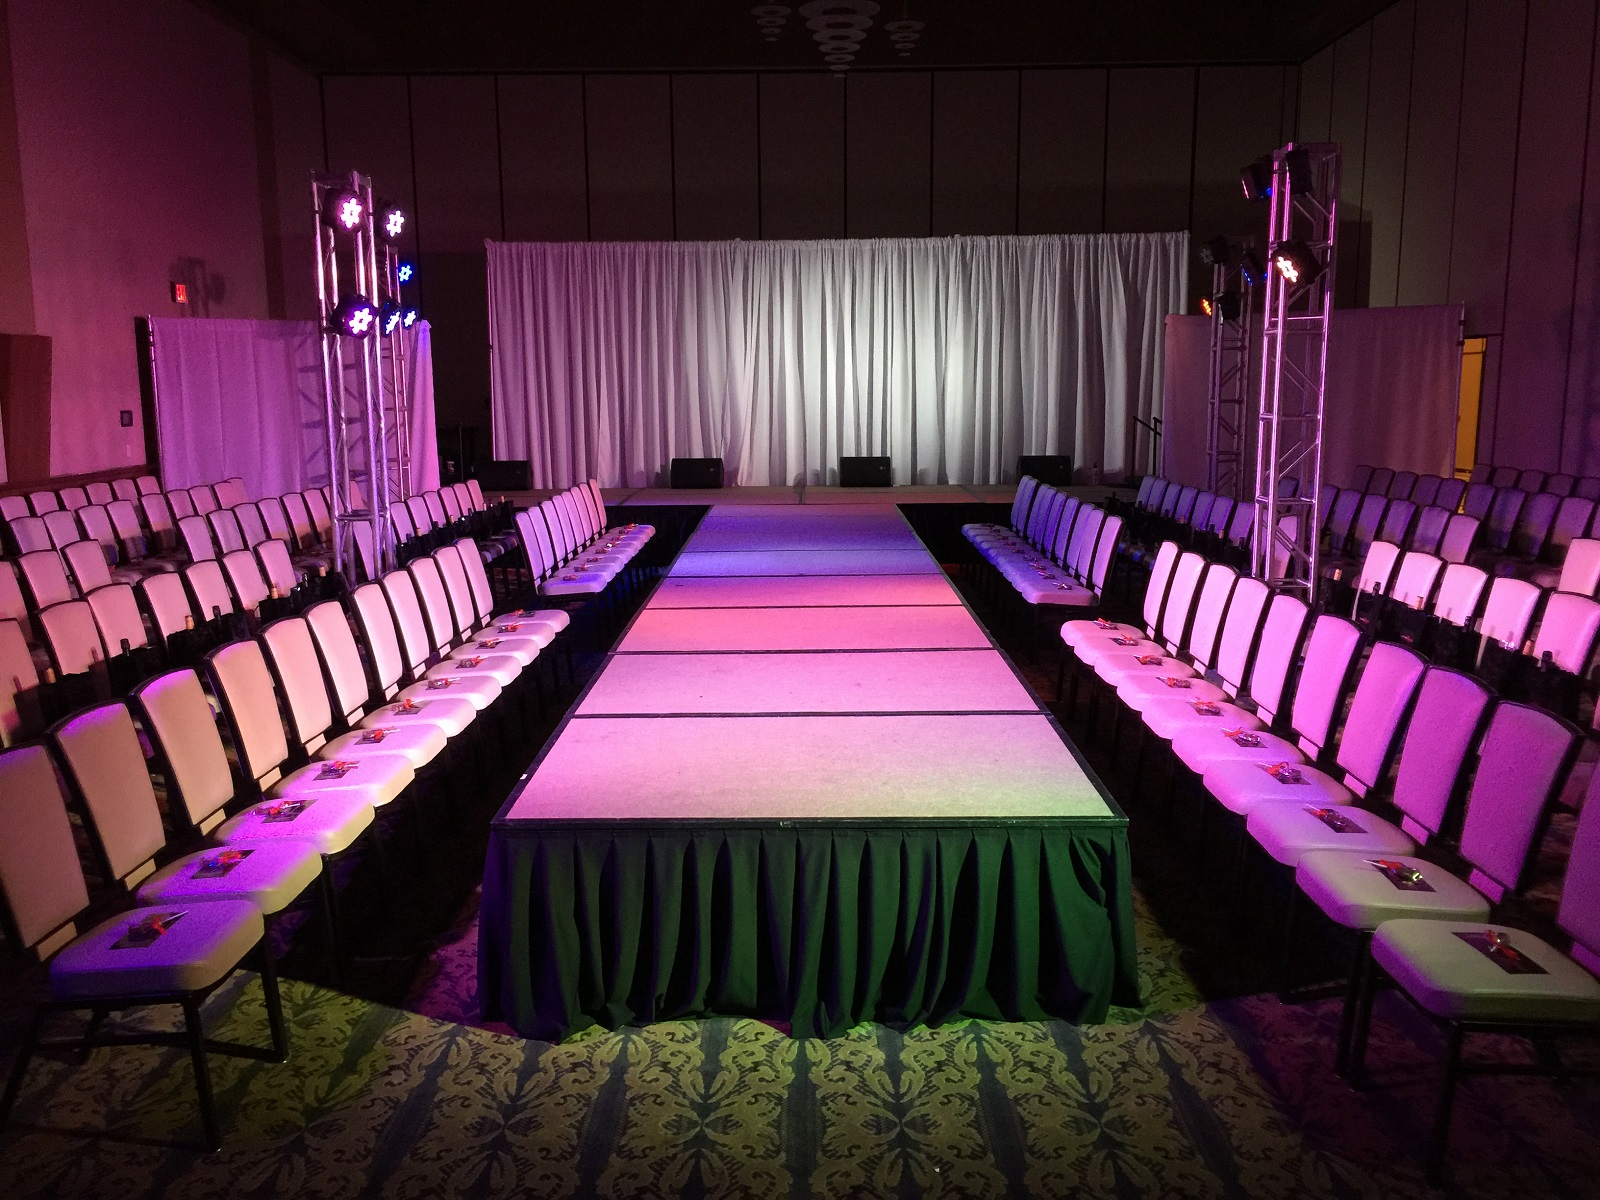 free church chairs leather chair ottoman set themed party rentals - las vegas event production